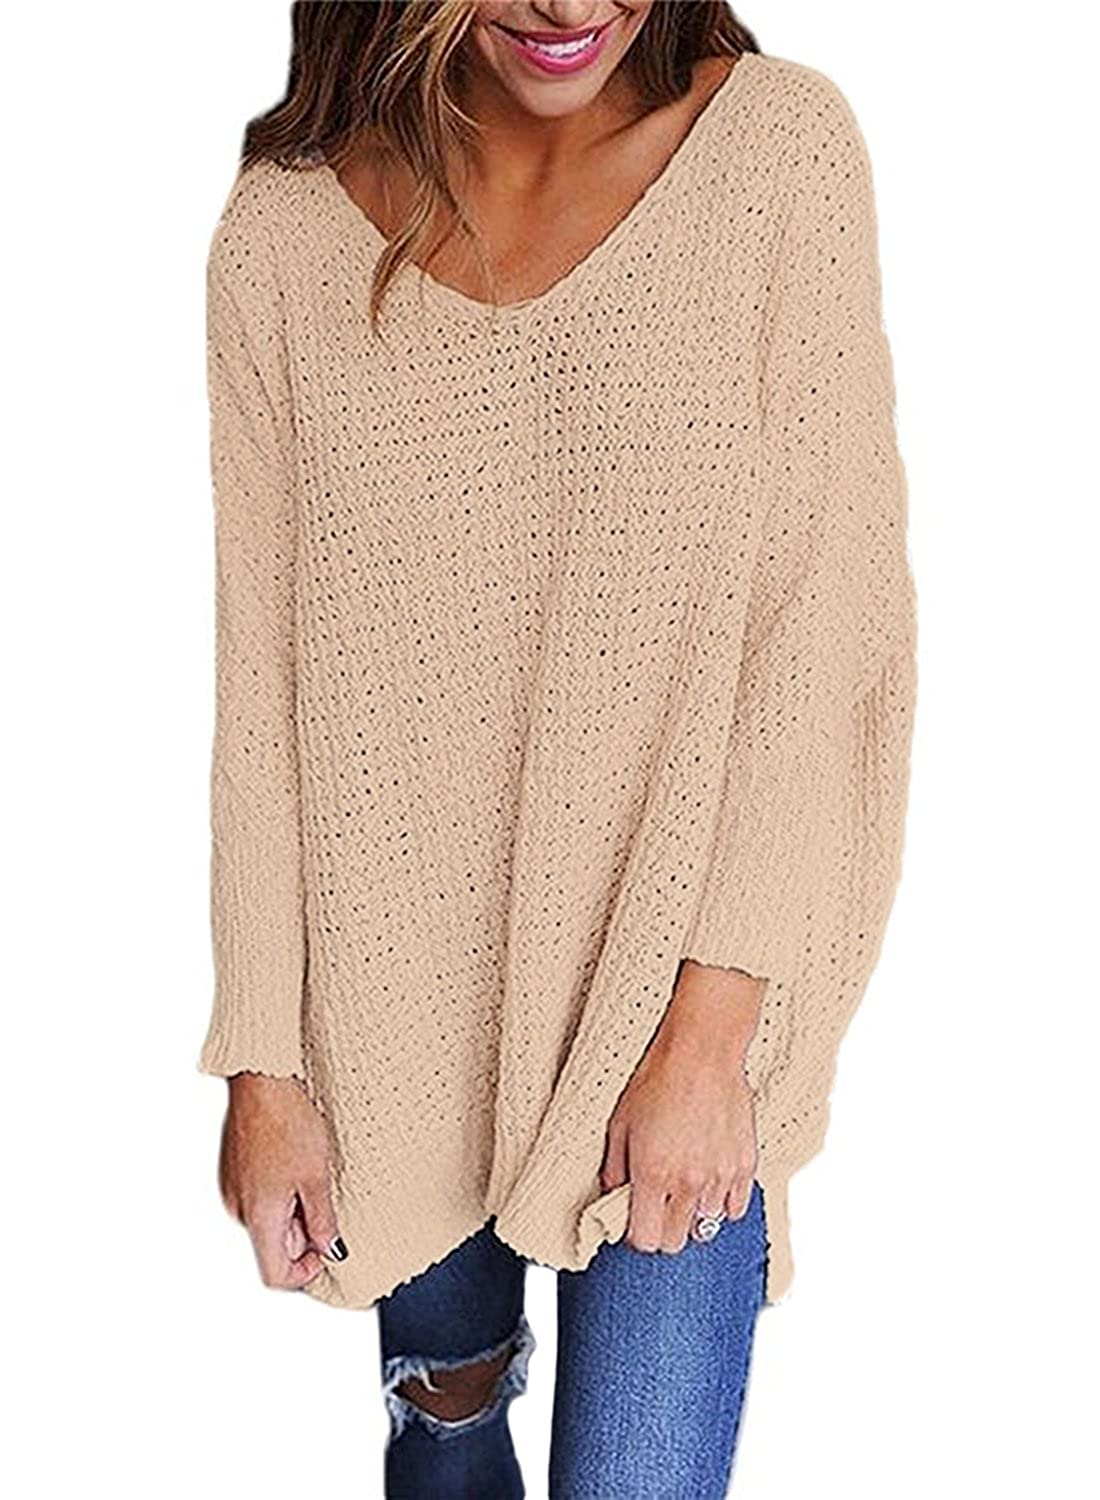 2830017616b8 Dokotoo Femme Casual Pull Col V Tricoté Manche Longue Sweater Lâche  Chandail Blouse Pullover Jumper S- XXL